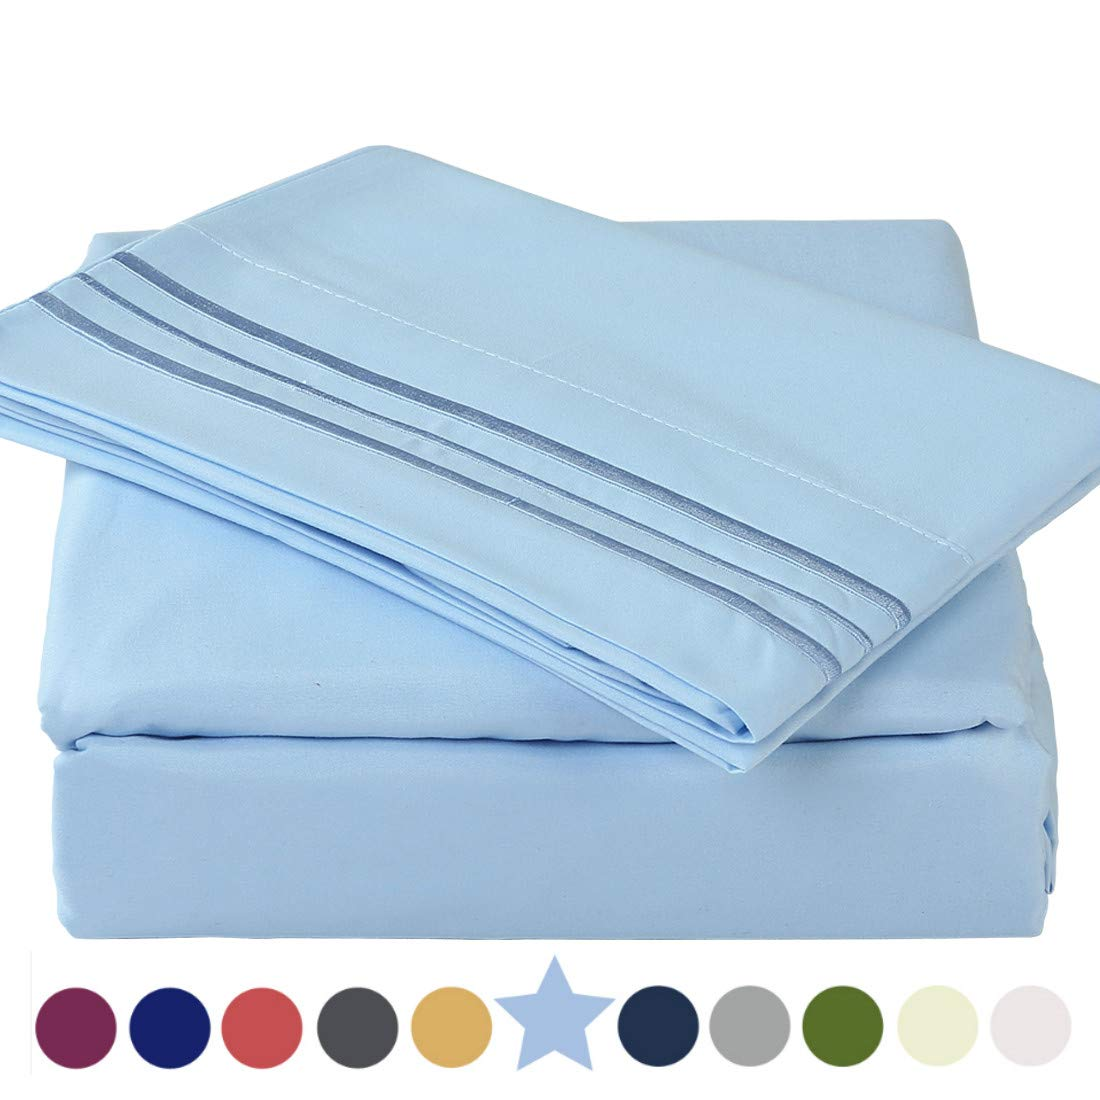 """TEKAMON Premium 4 Piece Bed Sheet Set 1800TC Bedding 100% Microfiber Polyester - Super Soft, Warm, Breathable, Cooling, Wrinkle and Fade Resistant - 10-16"""" Extra Deep Pockets, Queen, Lake Blue"""